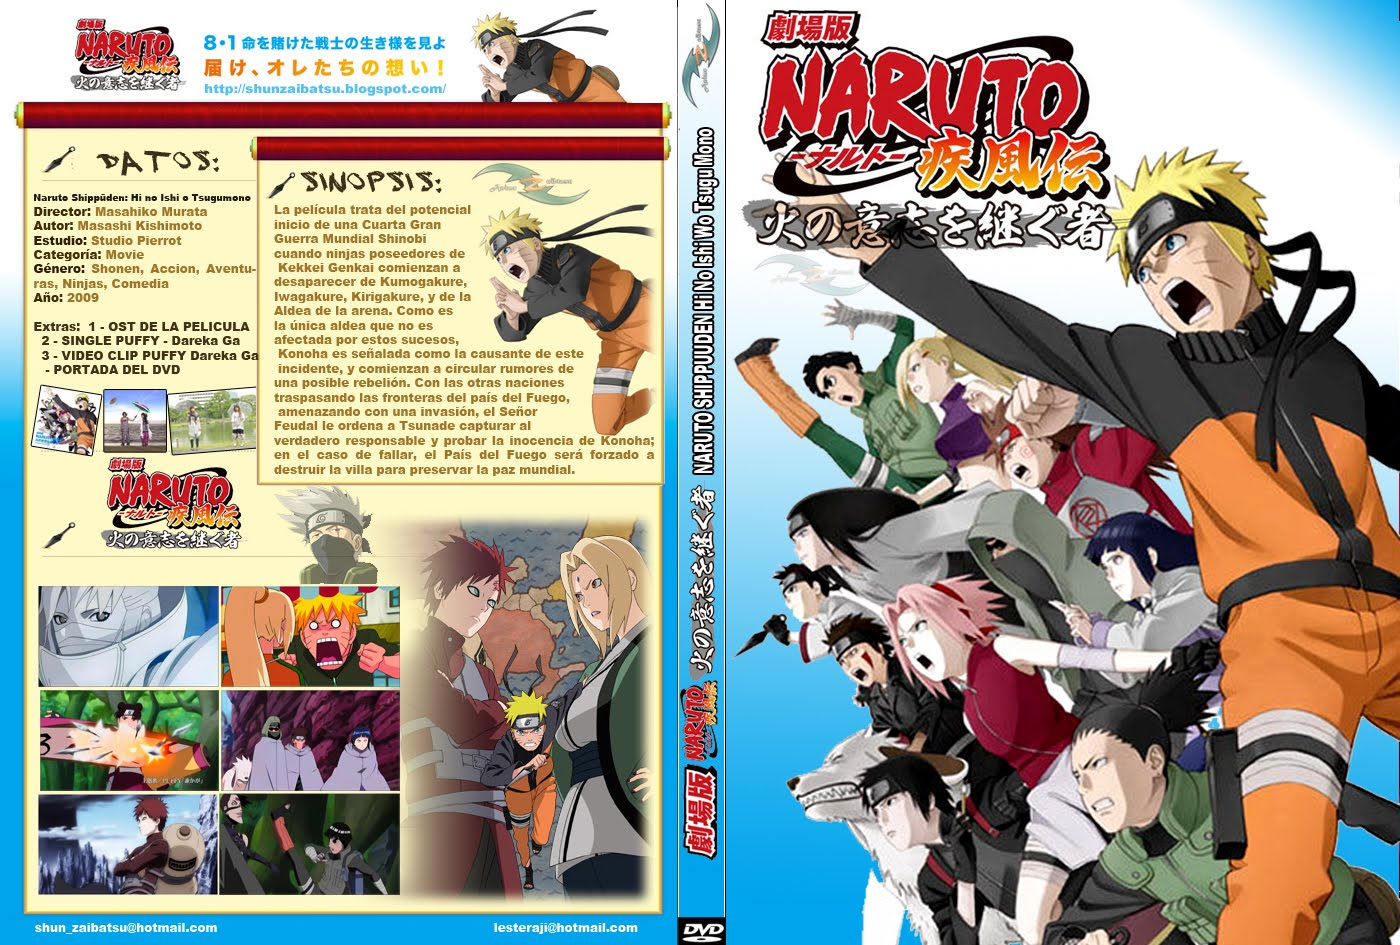 DVD+NARUTO+SHIPPUDEN+MOVIE+3 Naruto Shippuuden Movie 1 [ Subtitle Indonesia ]